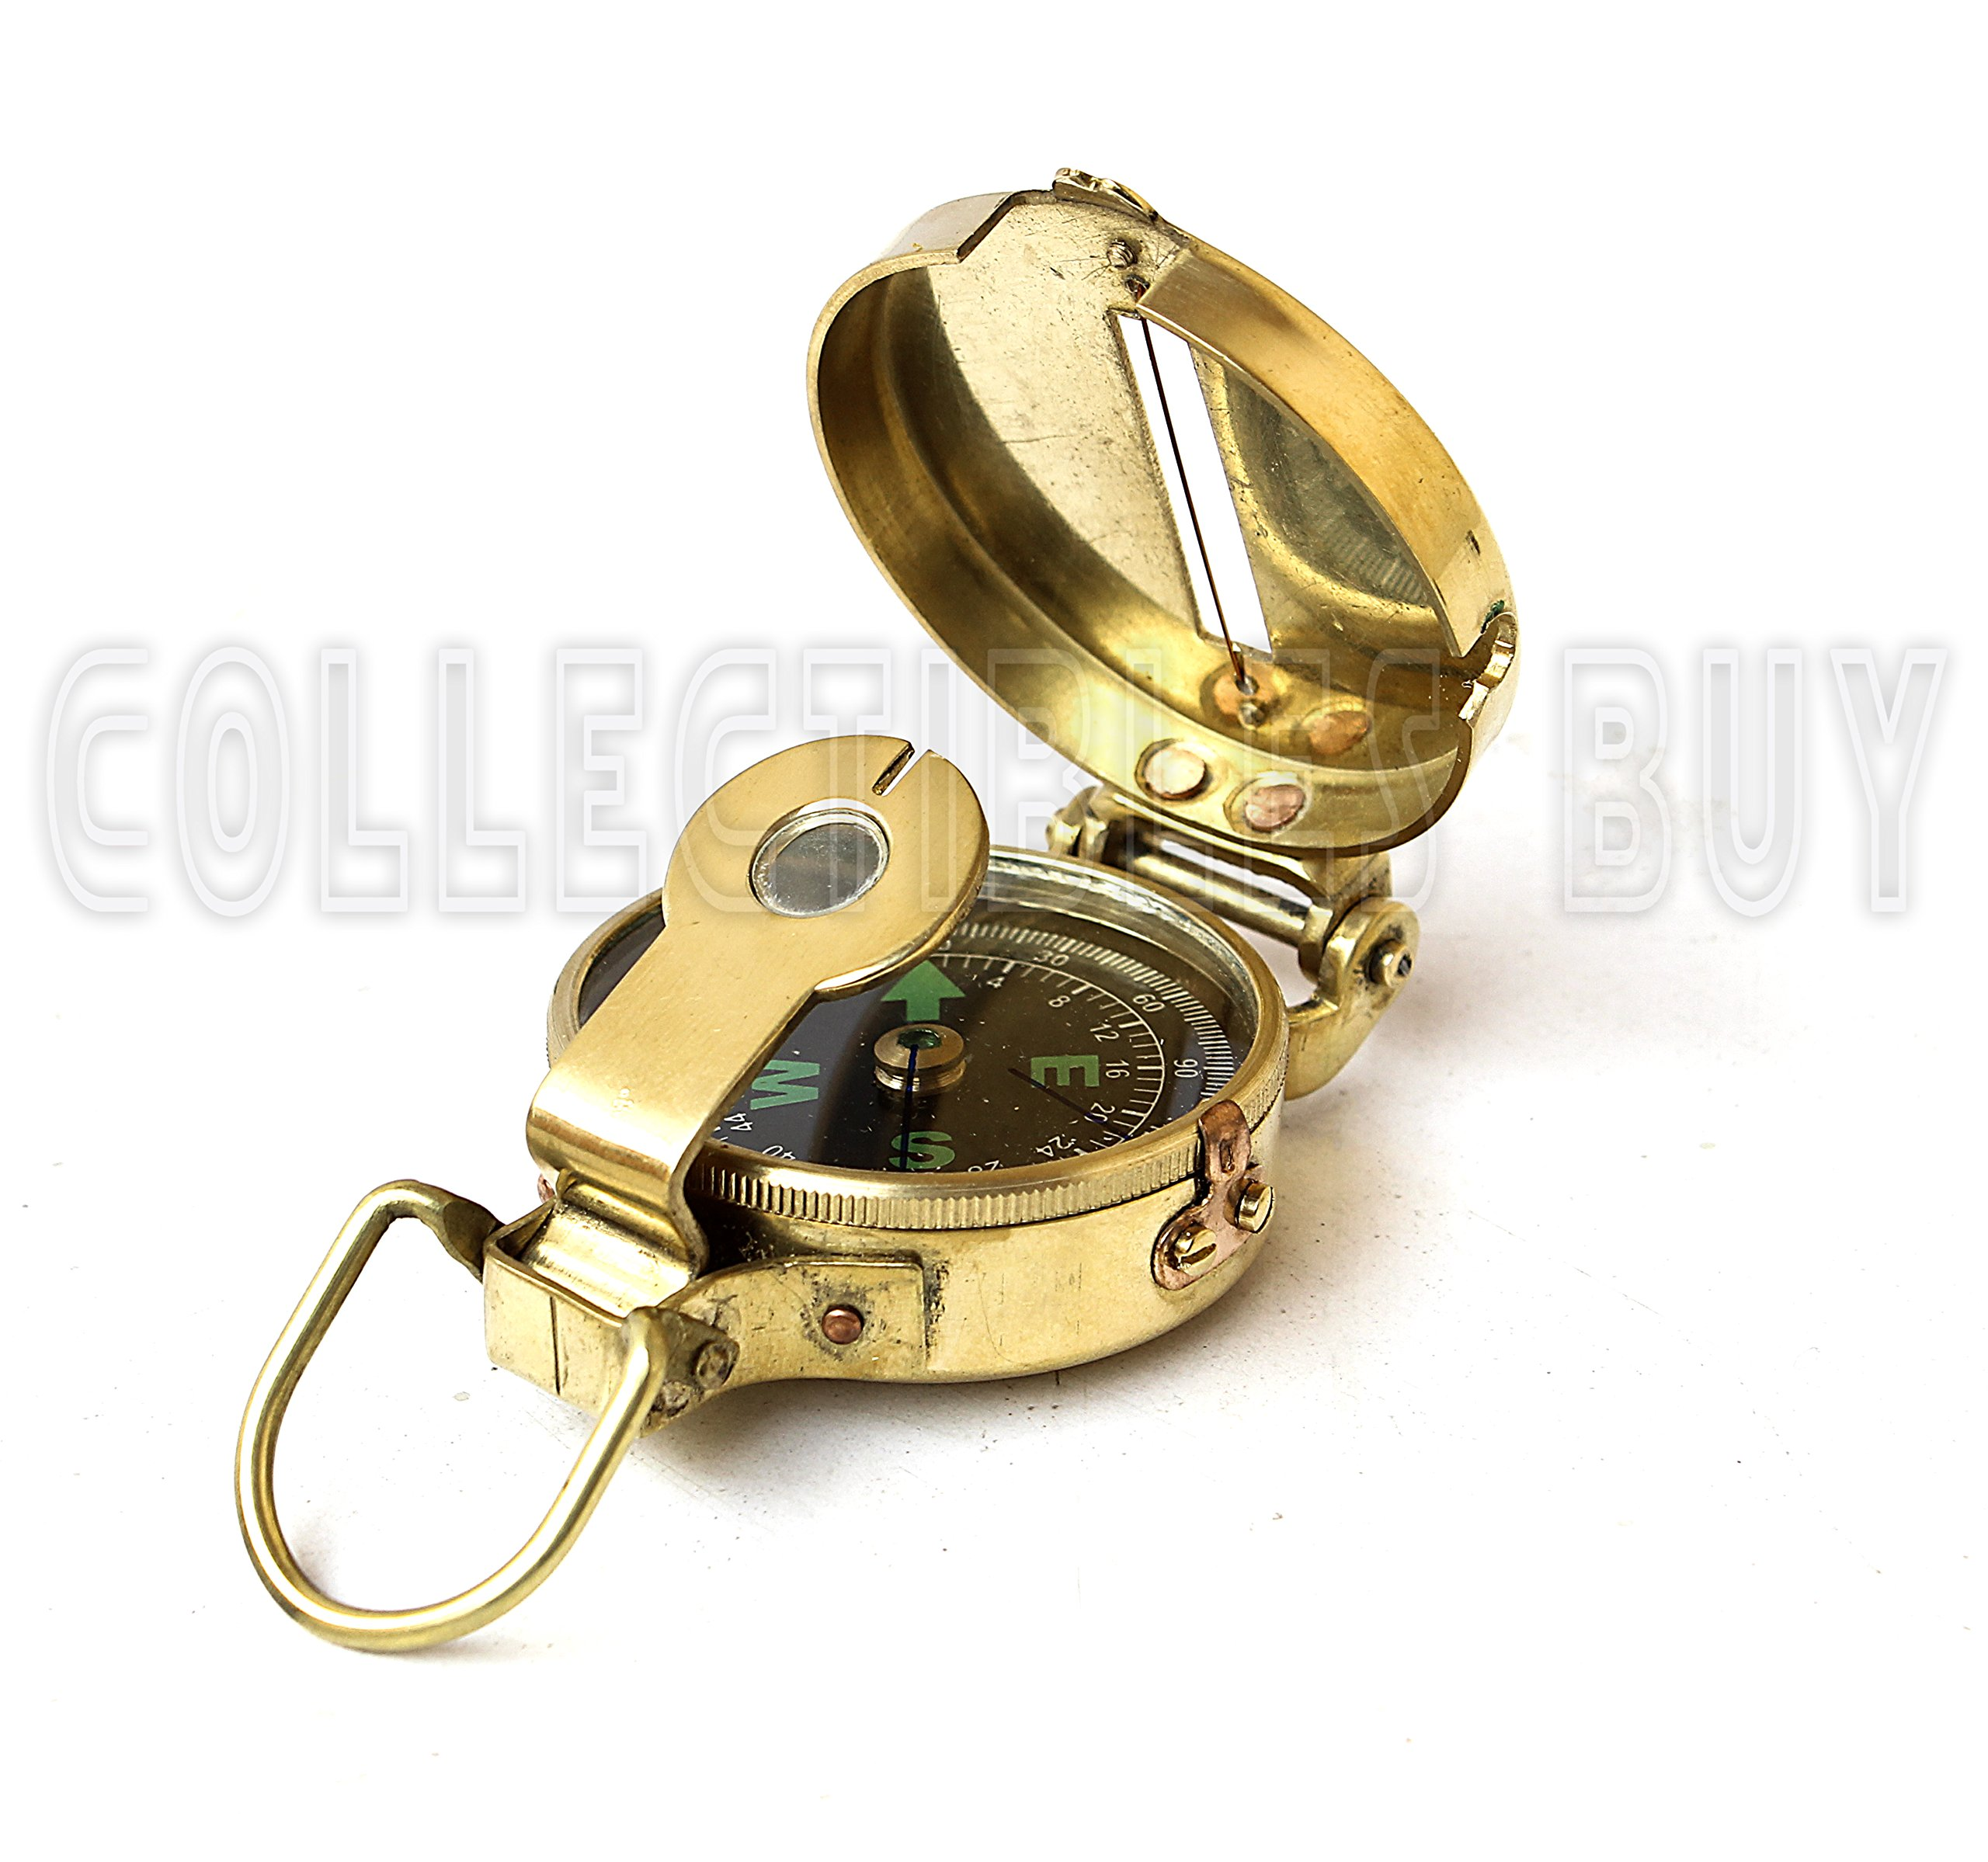 Collectibles Buy Military Navigational Instrument